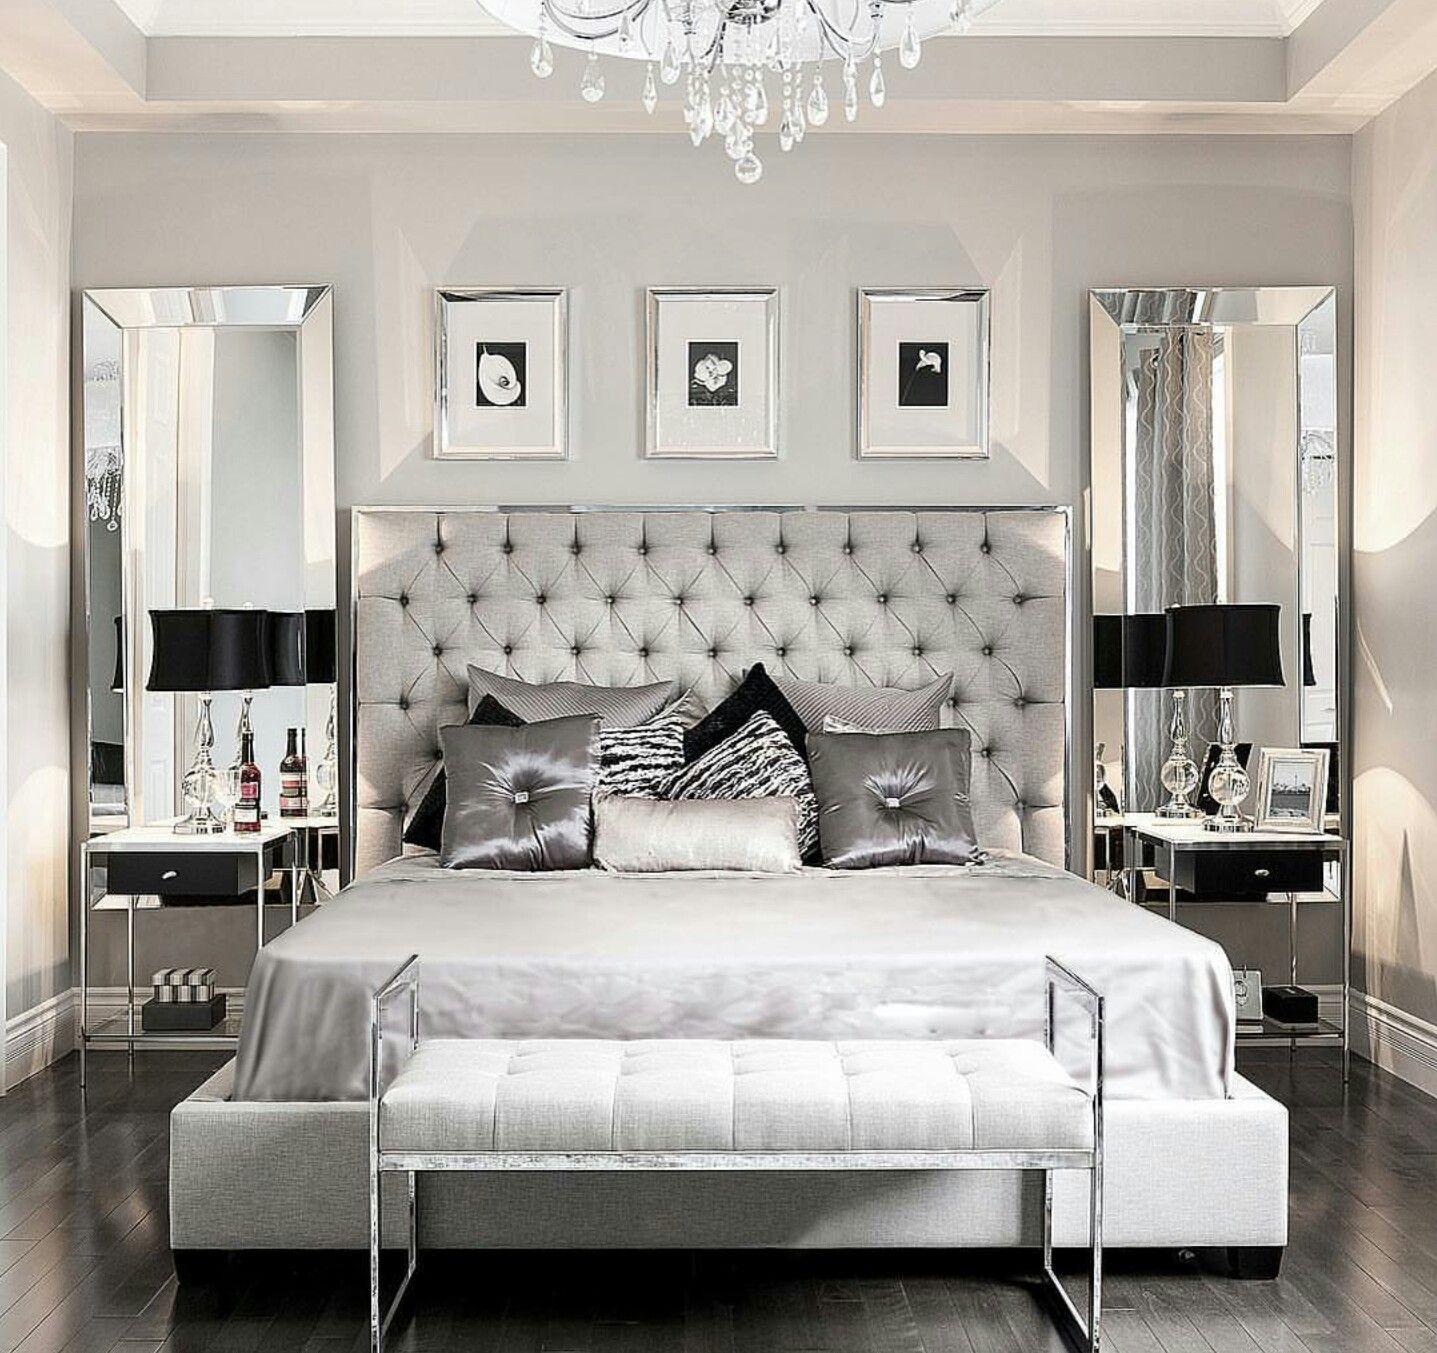 Upscale Luxury Master Bedroom